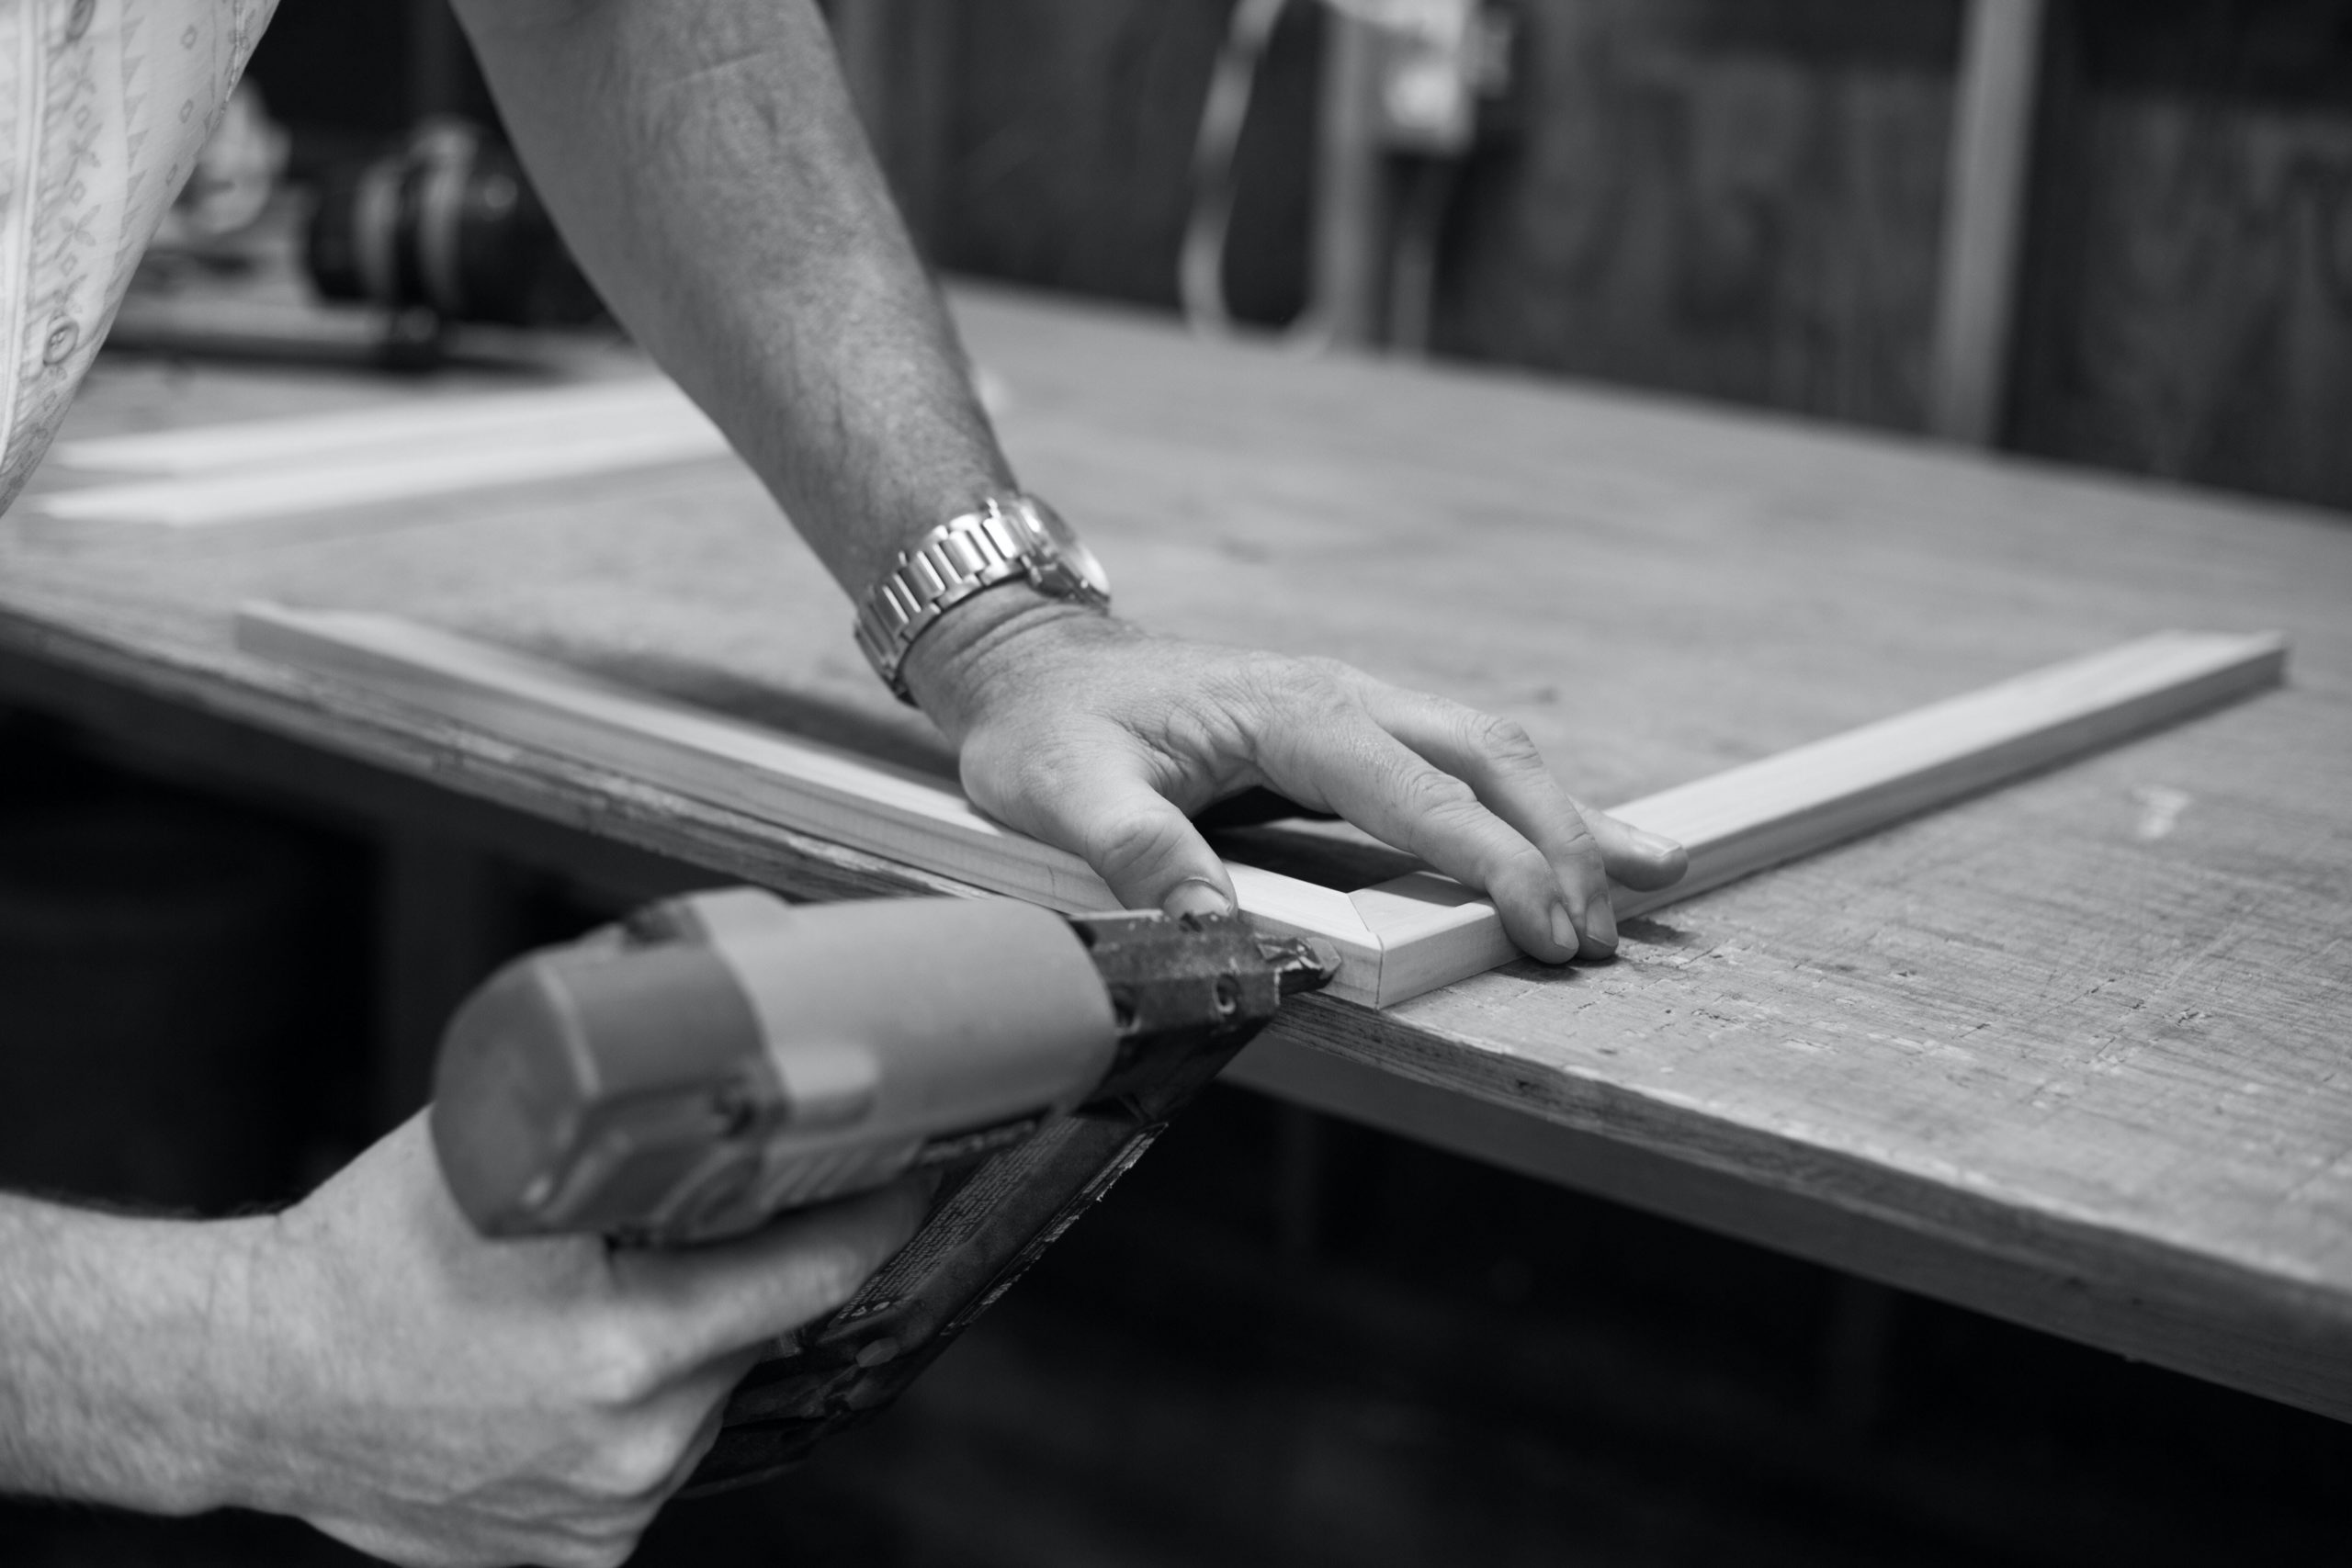 Man wearing a watch and using a nail framer